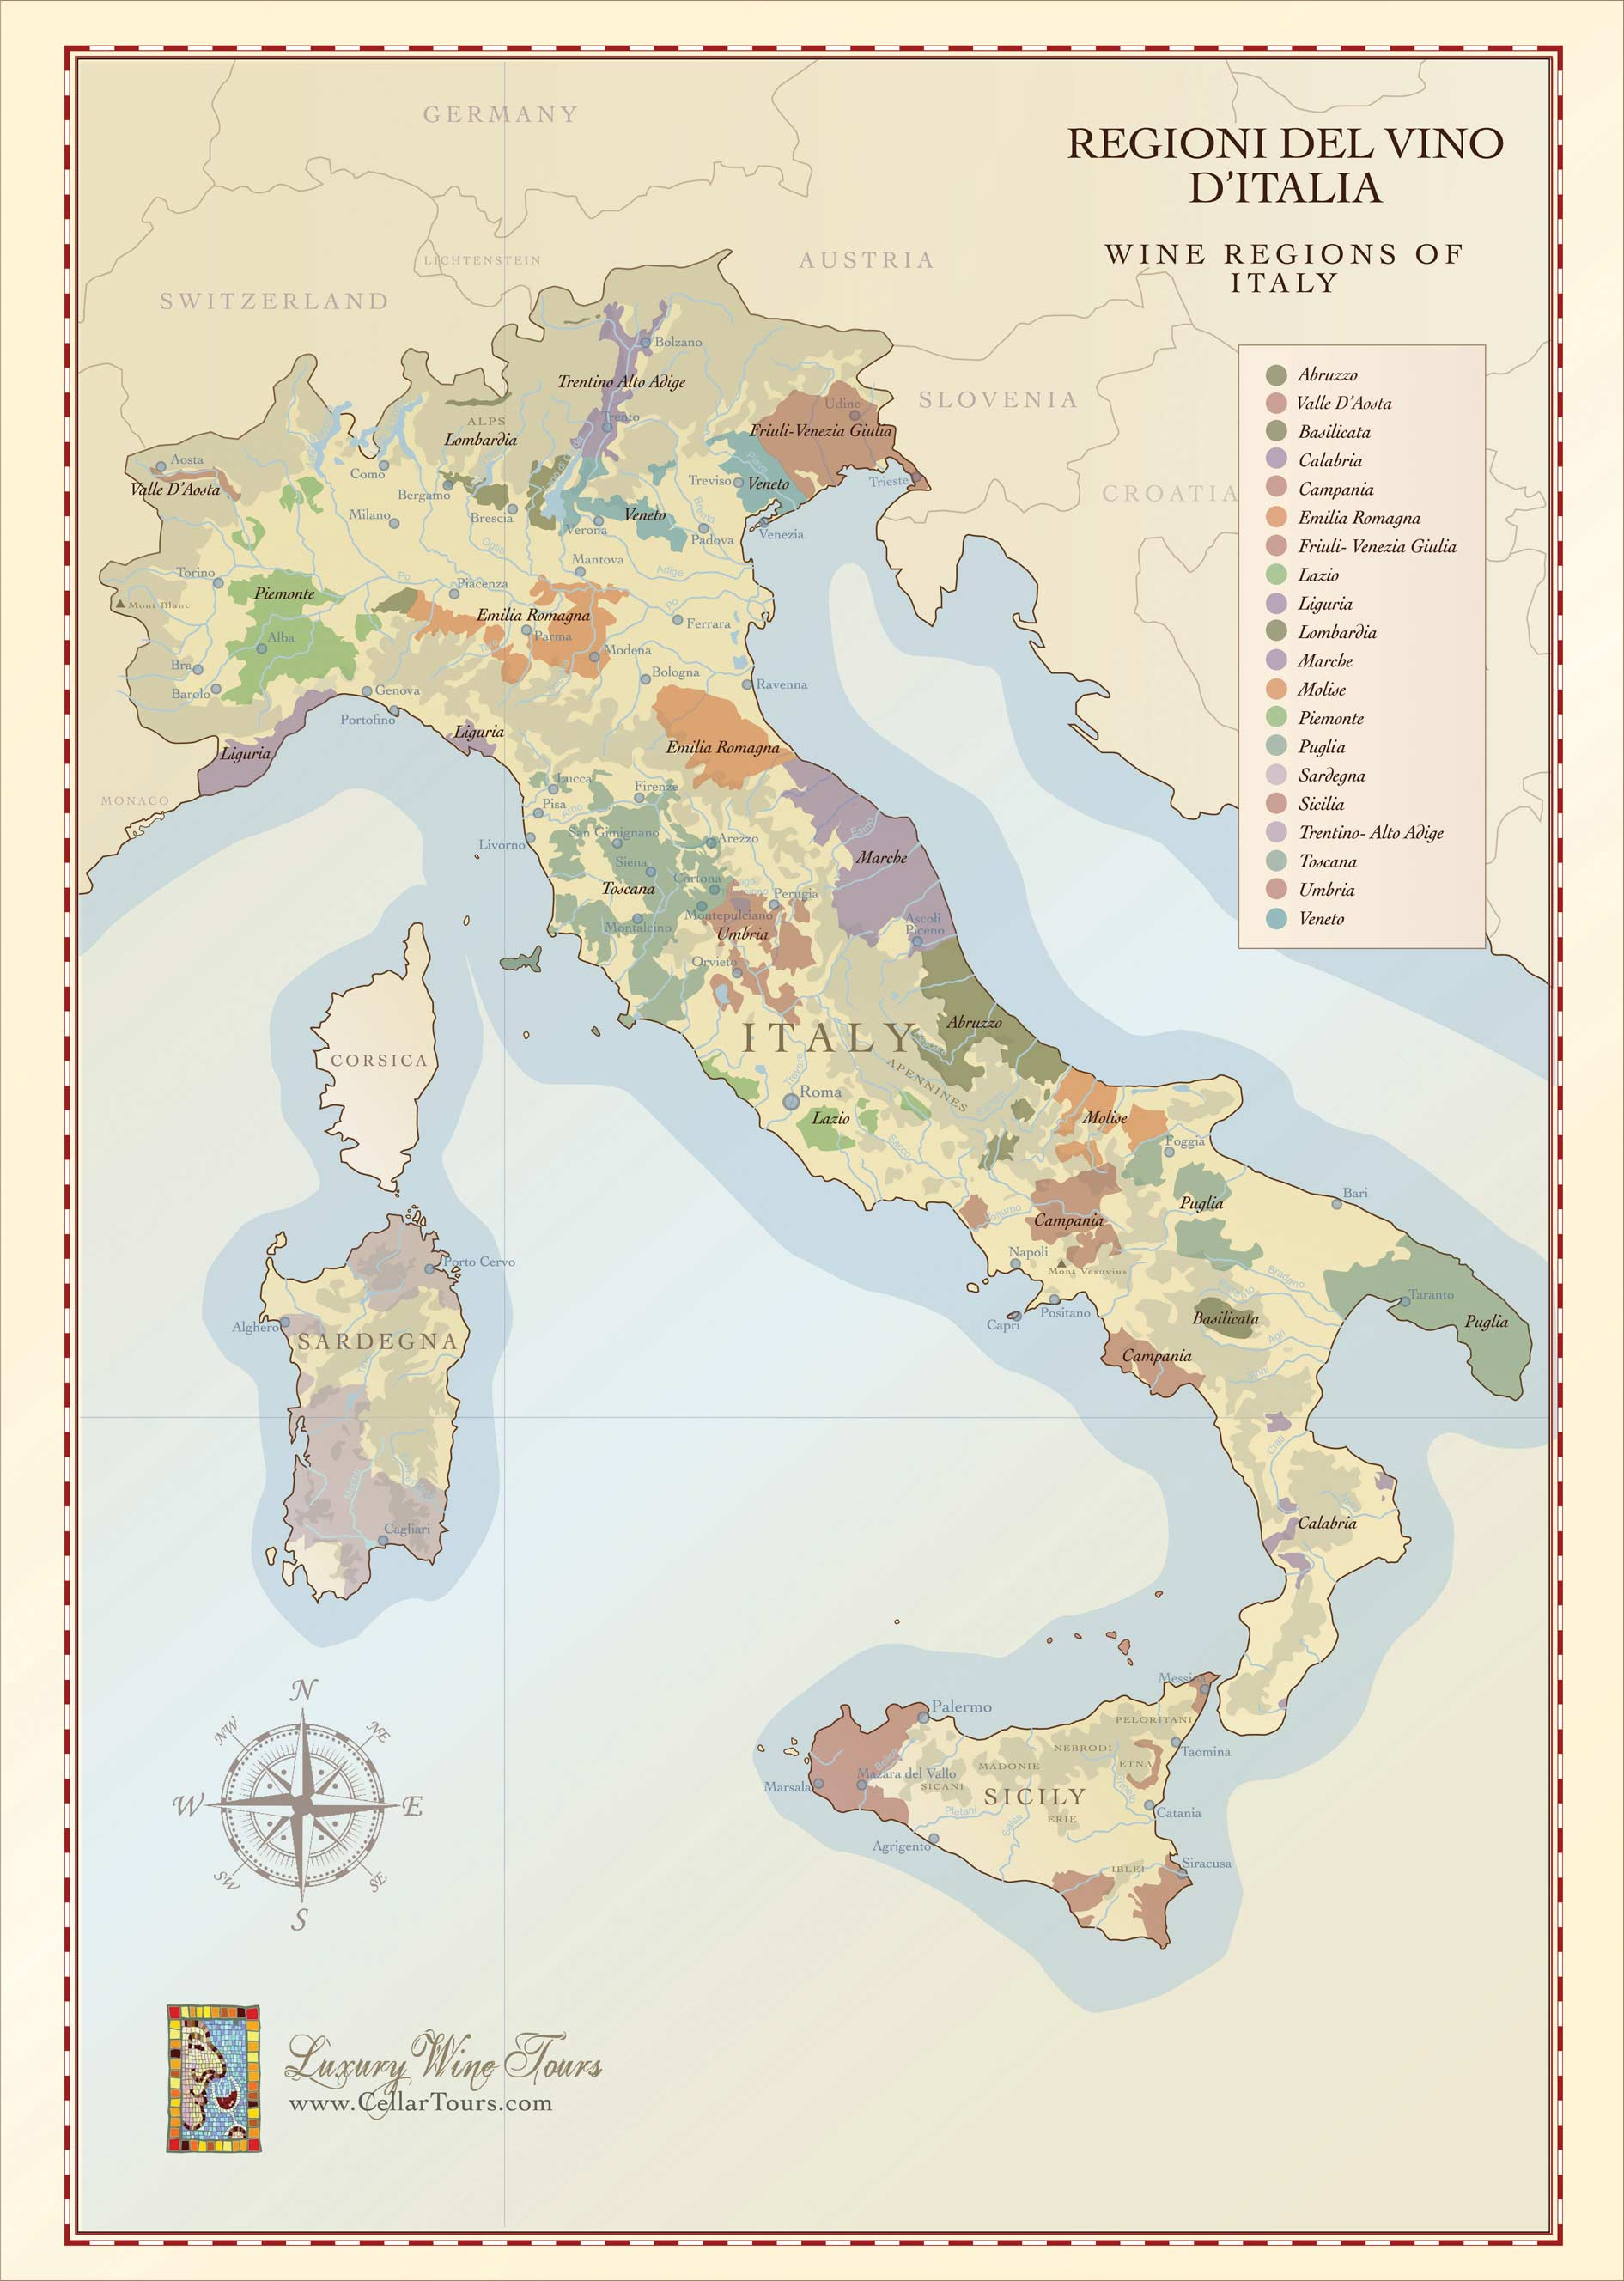 Italian Wine Regions Map Handcrafted Illustration Cellar Tours